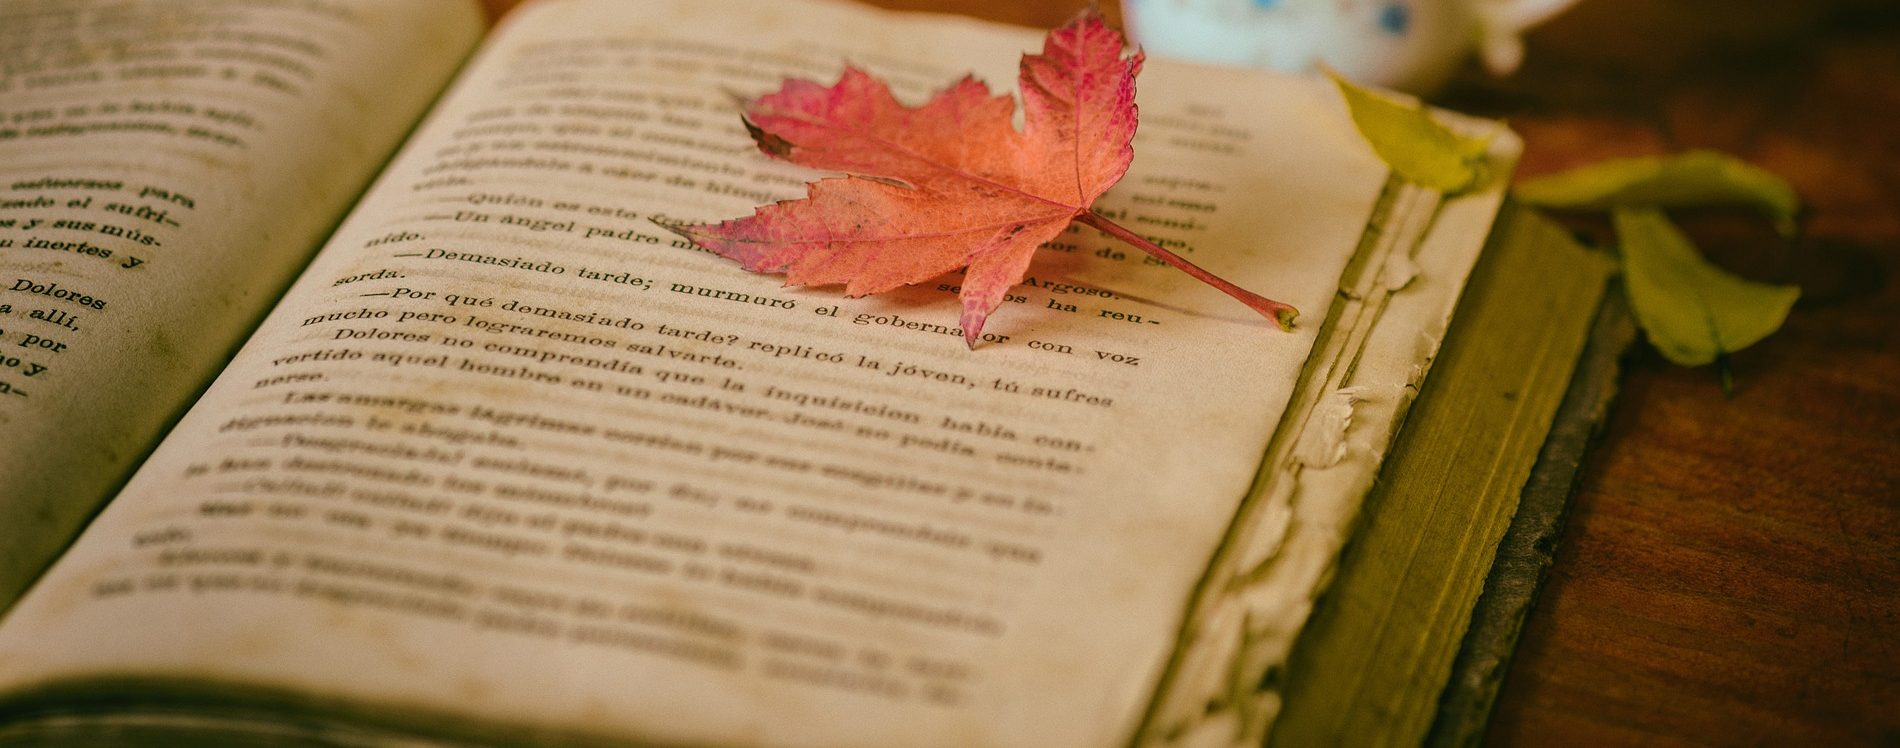 Pixabay - Free Clip Art - Use For Prose and Poetry- Book and Leaf